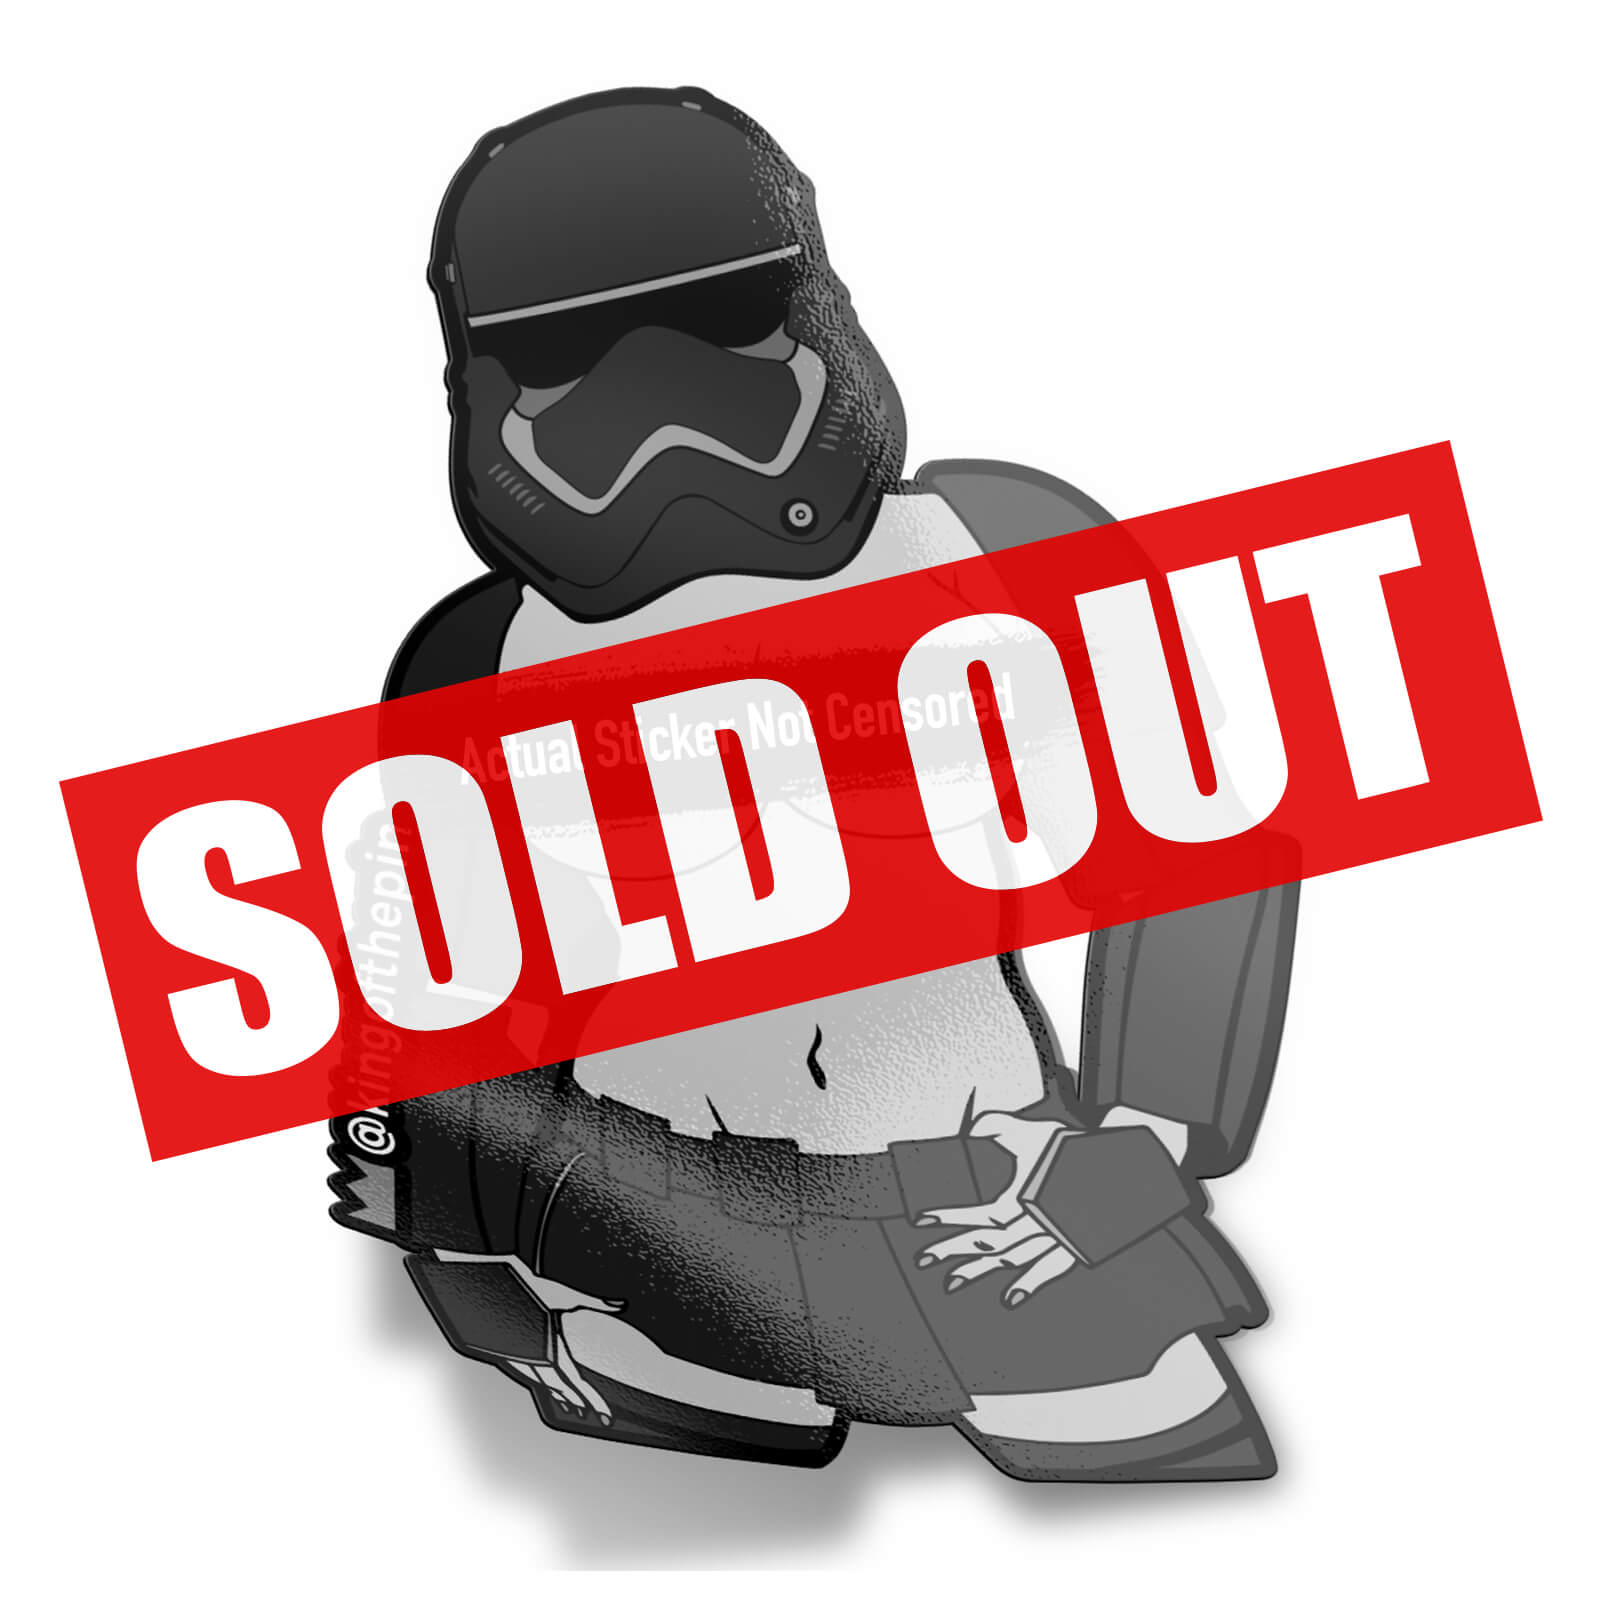 Shadowtrooper (Star Wars) After Hours Sticker (PREORDER)